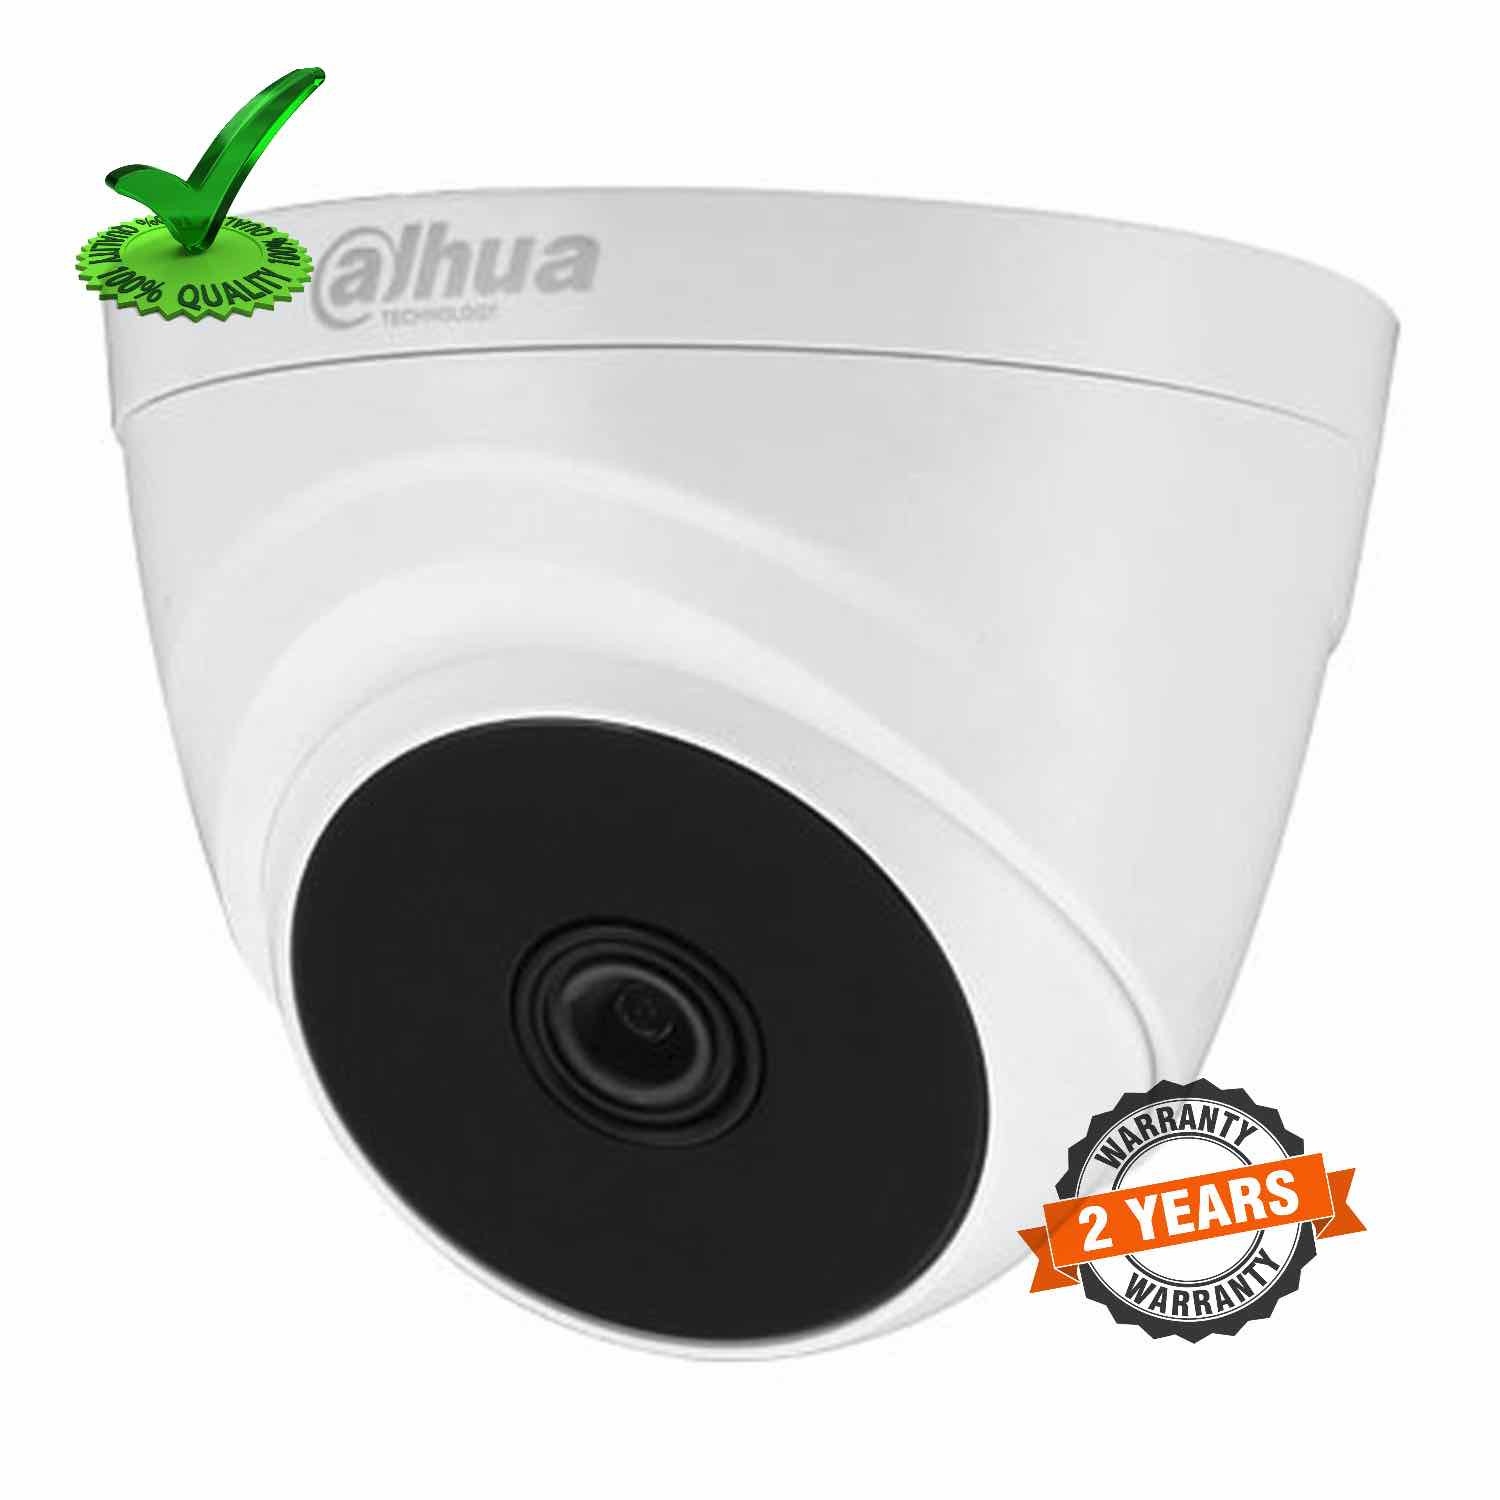 Dahua DH-HAC-T1A11P HDCVI 1mp IR  Dome Camera